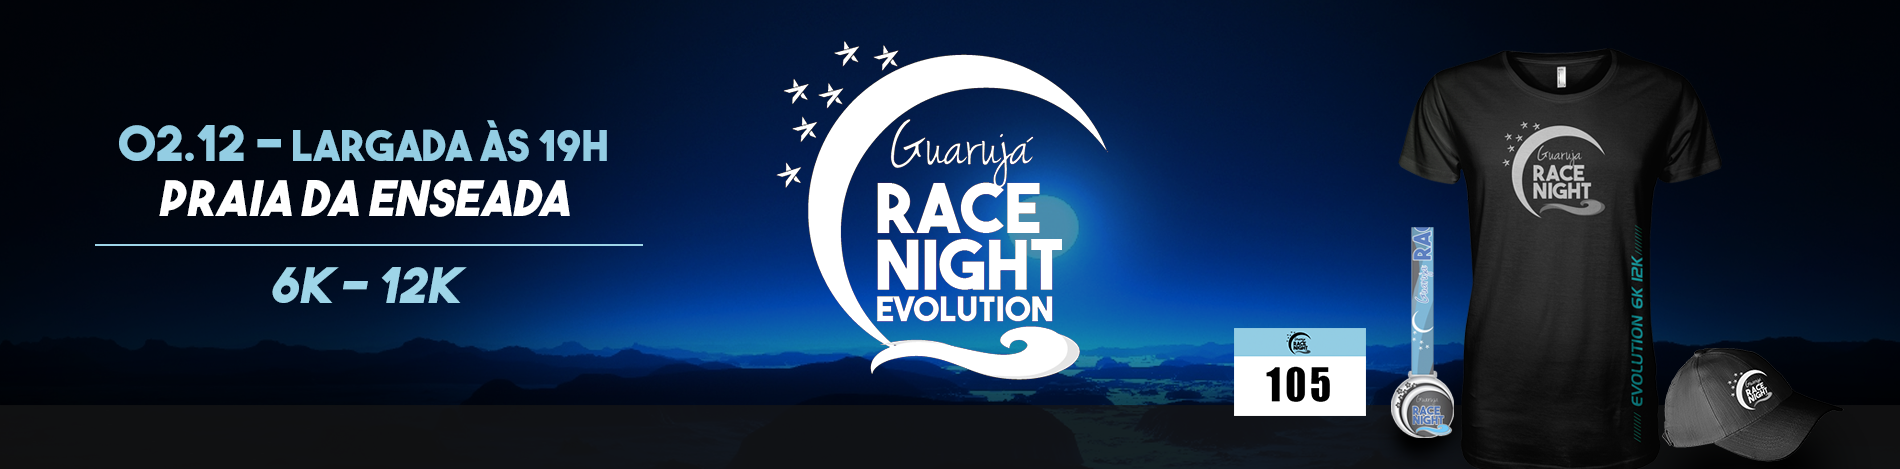 GUARUJÁ RACE NIGHT EVOLUTION 2017 - Imagem de topo